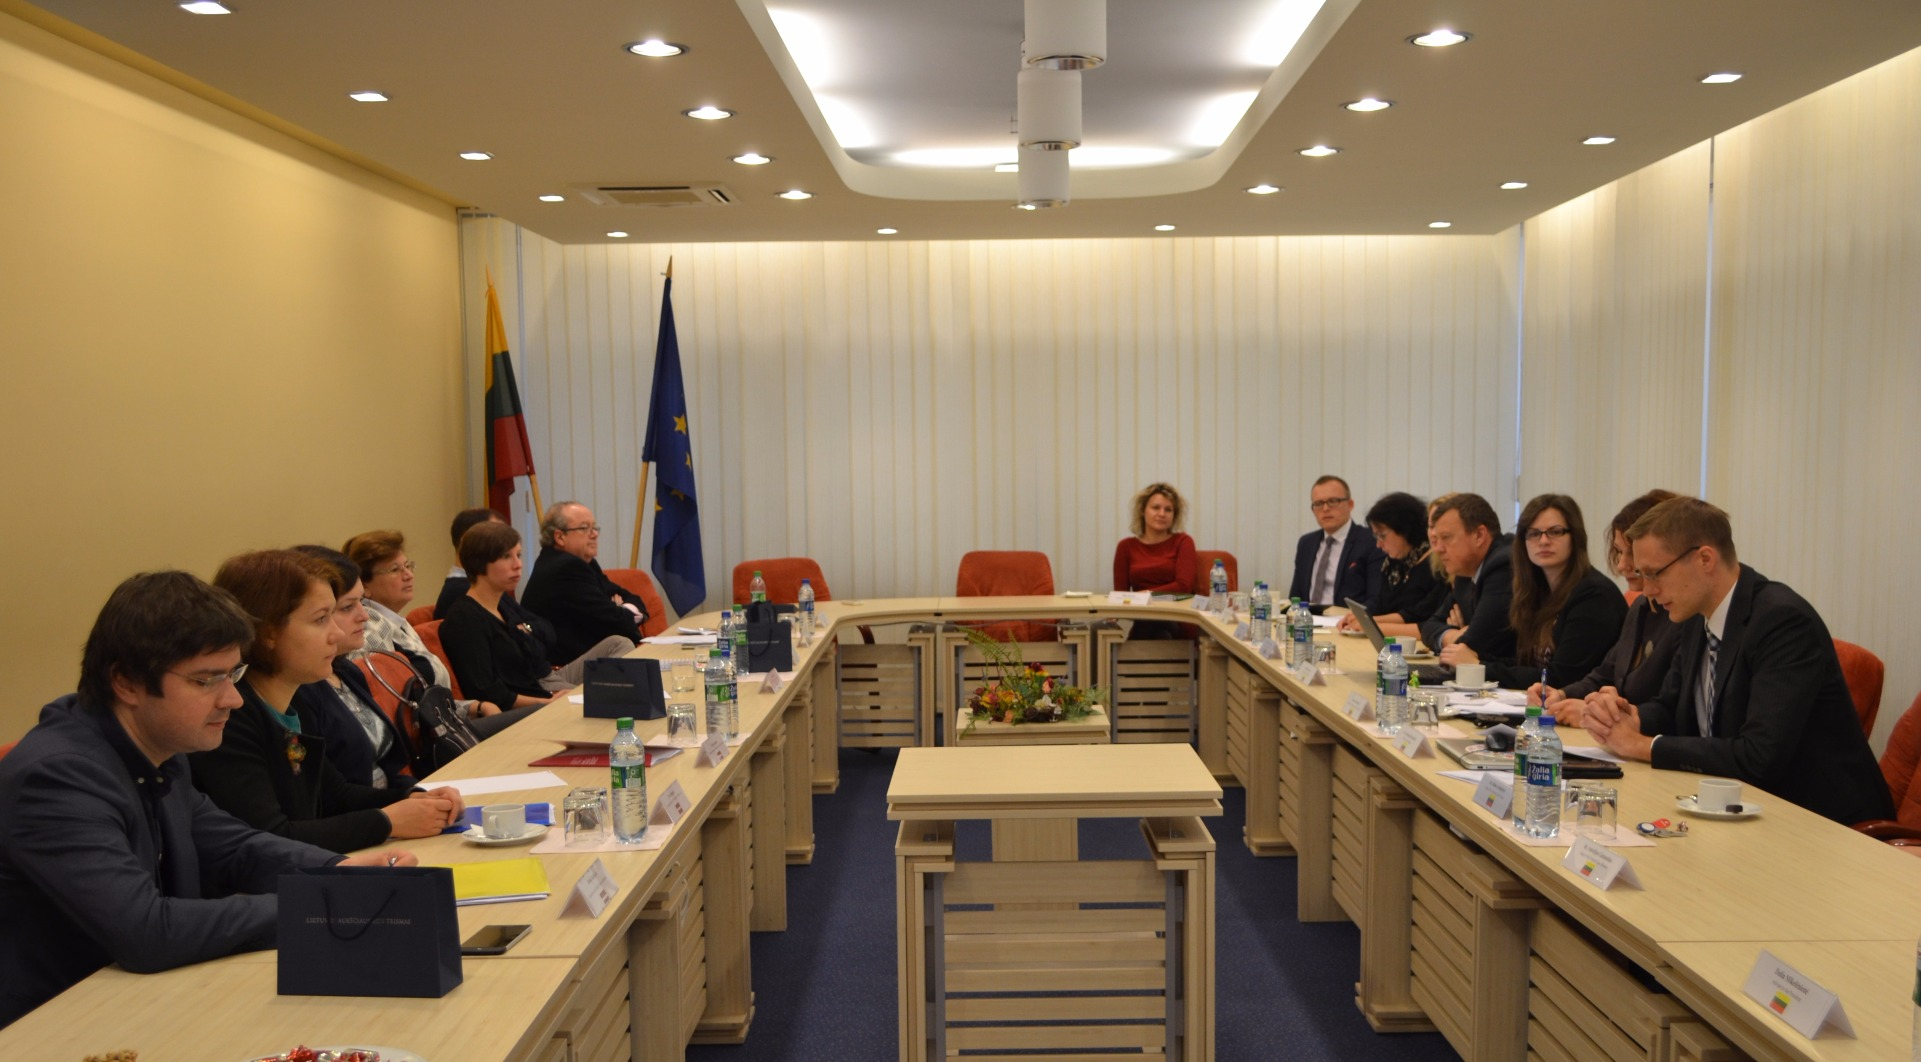 """19.10.2016. Within the framework of the project """"Supreme Courts as guarantee for effectiveness of judicial system in the European Union"""", the representatives of the Supreme Courts of Latvia, Lithuania, Hungary and Spain participated in a meeting in the Lithuanian Supreme Court and for three consecutive days took part in discussions and workshops on issue of publishing court rulings."""